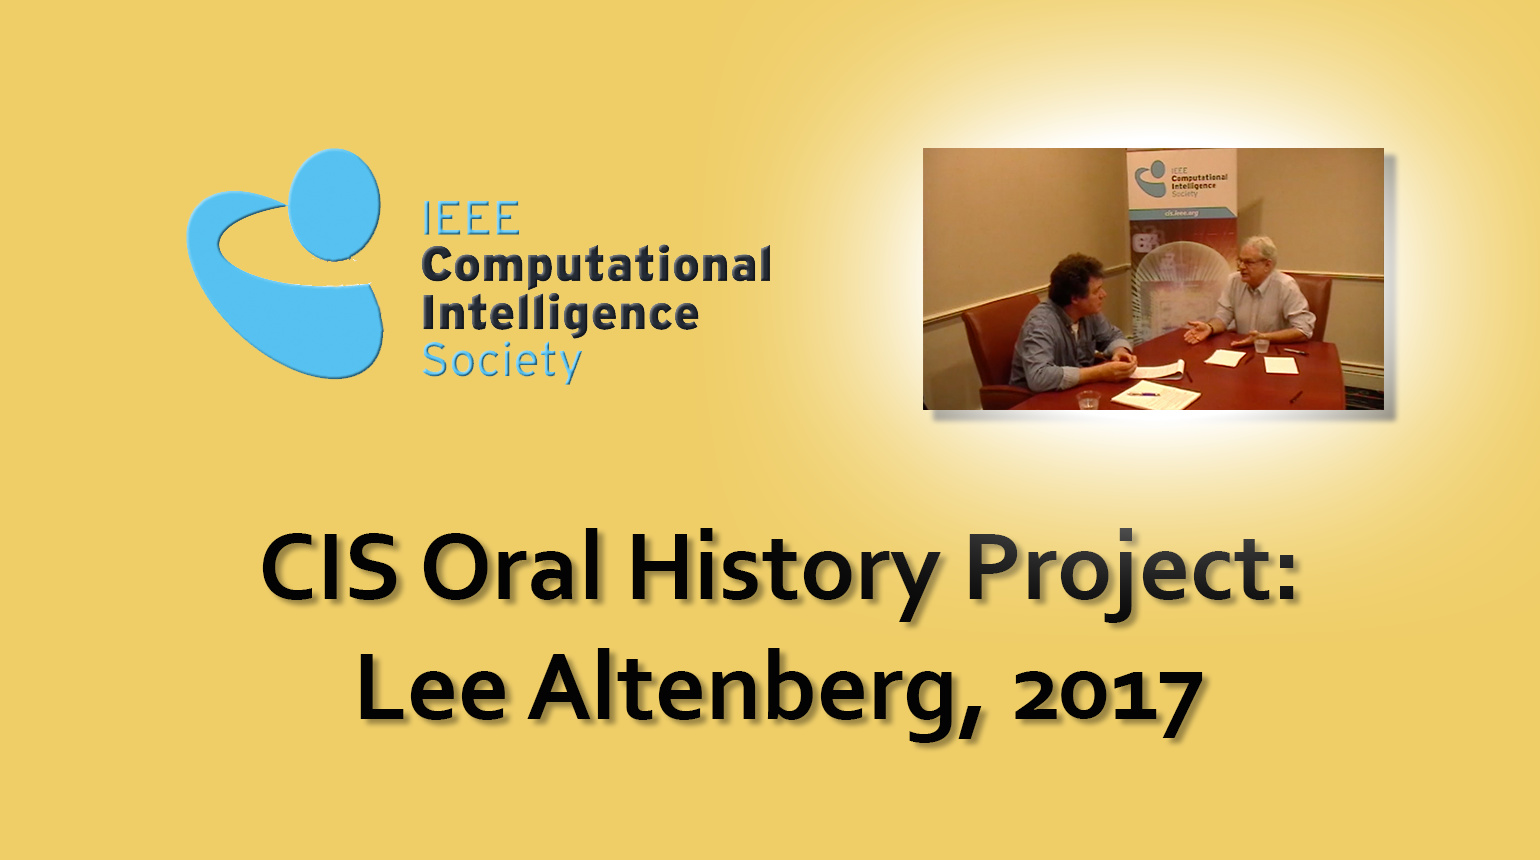 Interview with Lee Altenberg, 2017: CIS Oral History Project